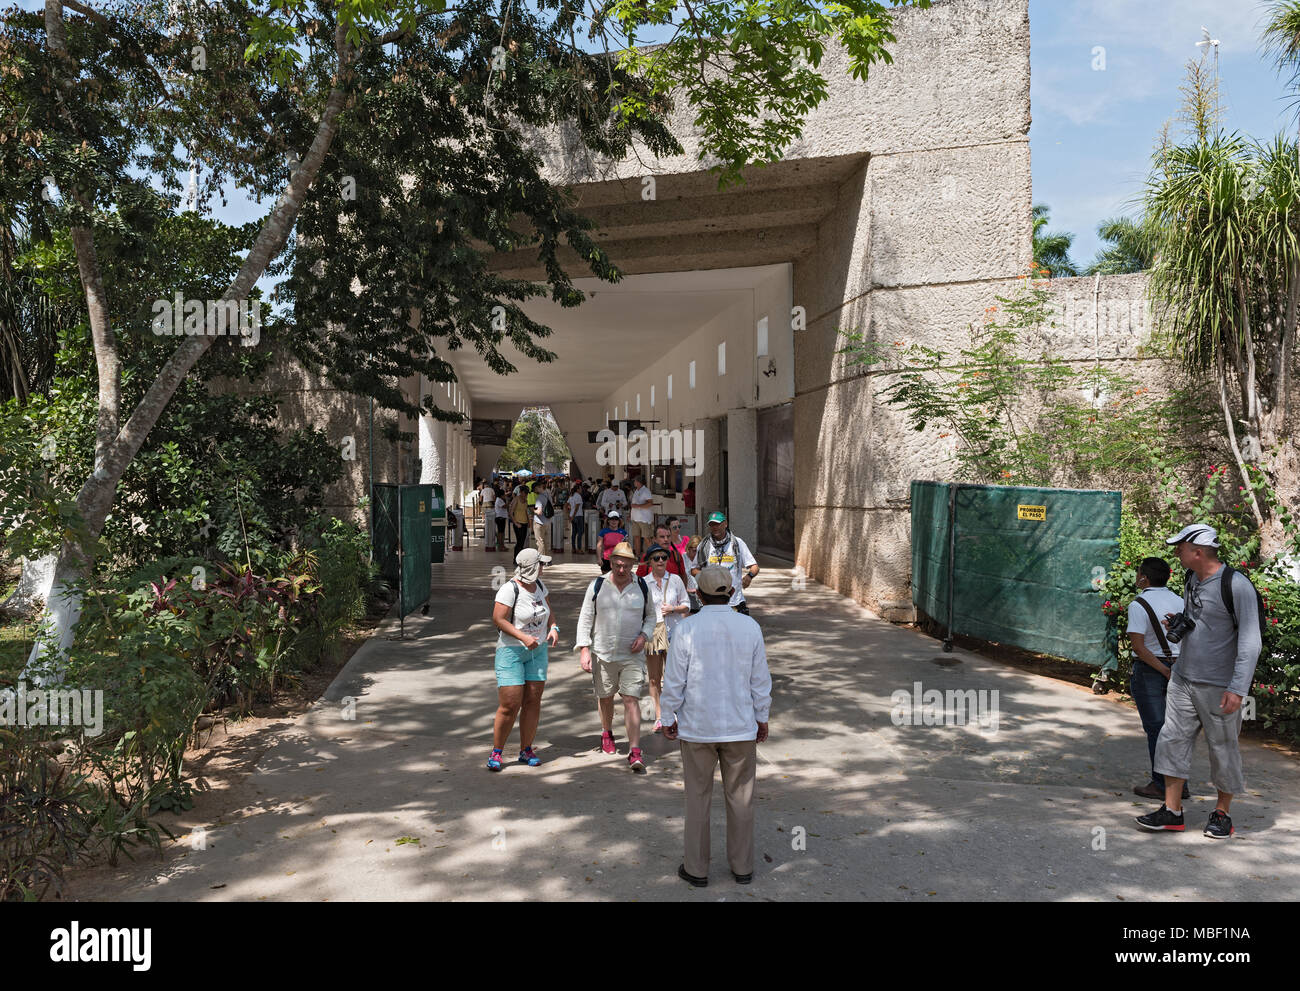 view of a group of unidentified tourists in the entrance area of chichen itza, yucatan, mexico - Stock Image